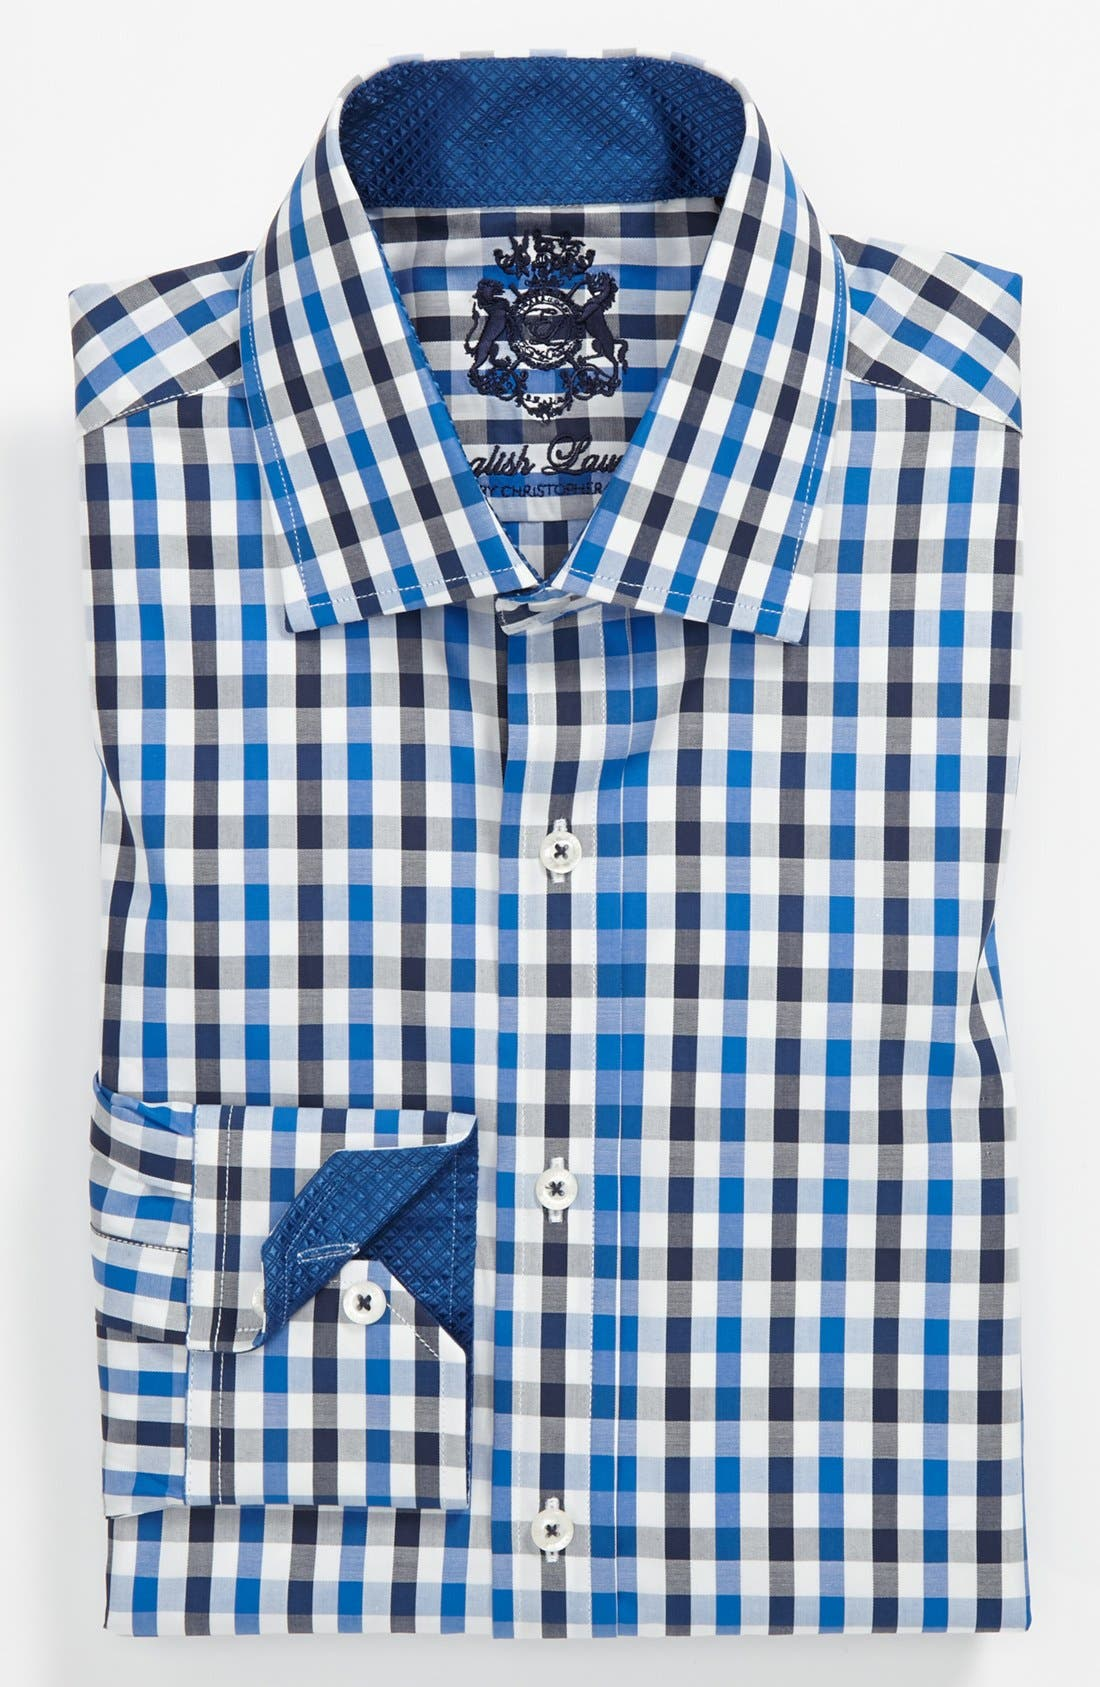 Alternate Image 1 Selected - English Laundry Trim Fit Dress Shirt